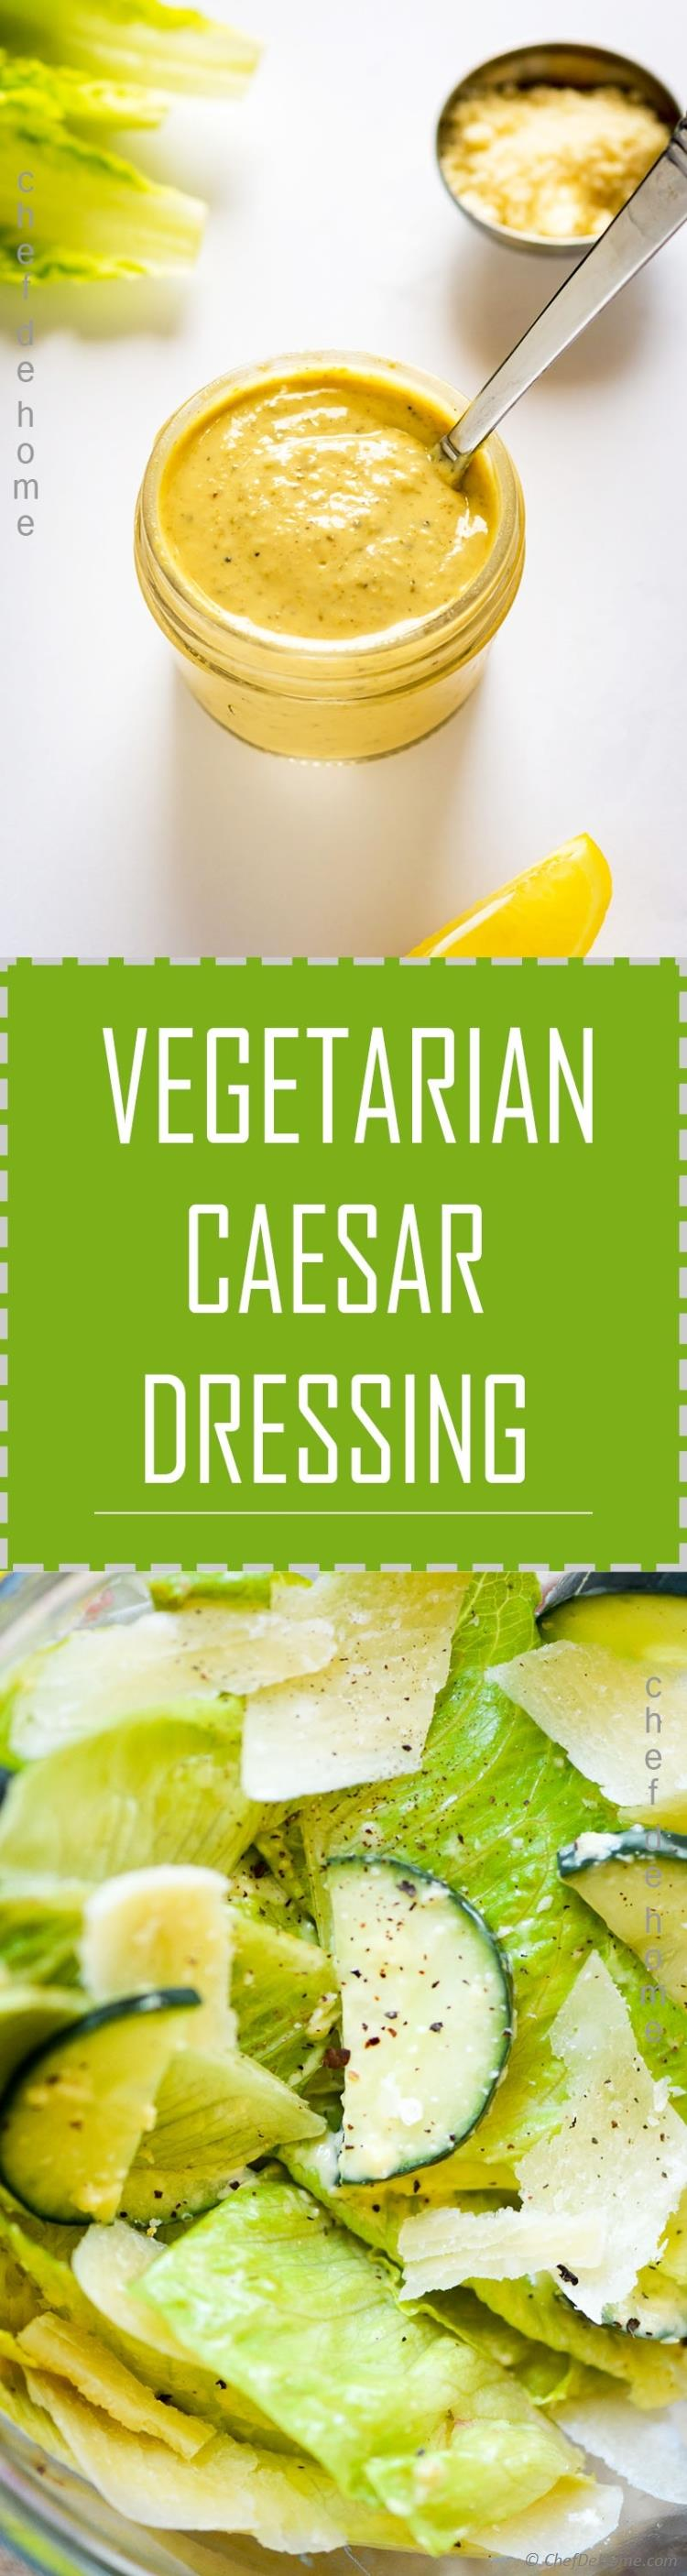 Caesar dressing coated lettuce and cucumber salad